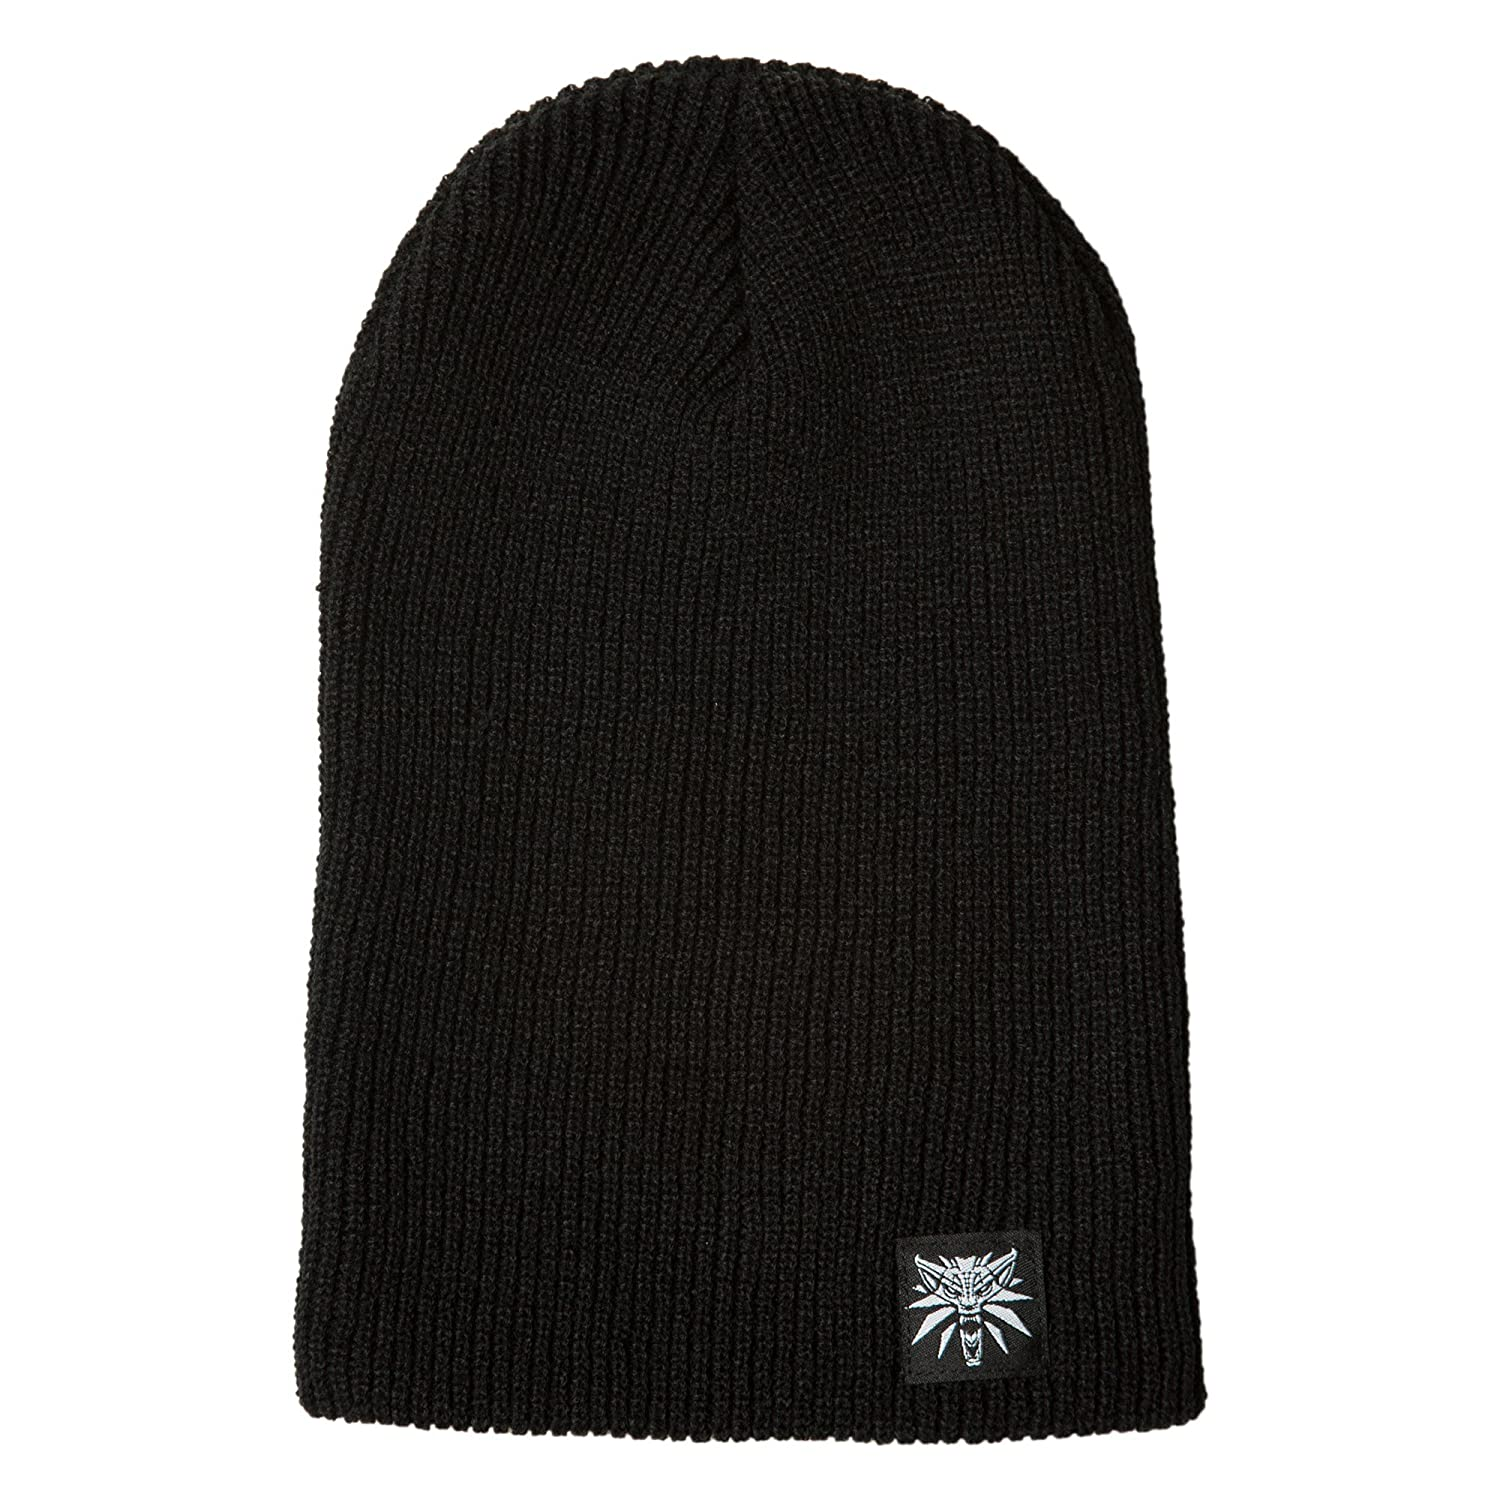 The Witcher 3 White Wolf Slouch Beanie J!NX